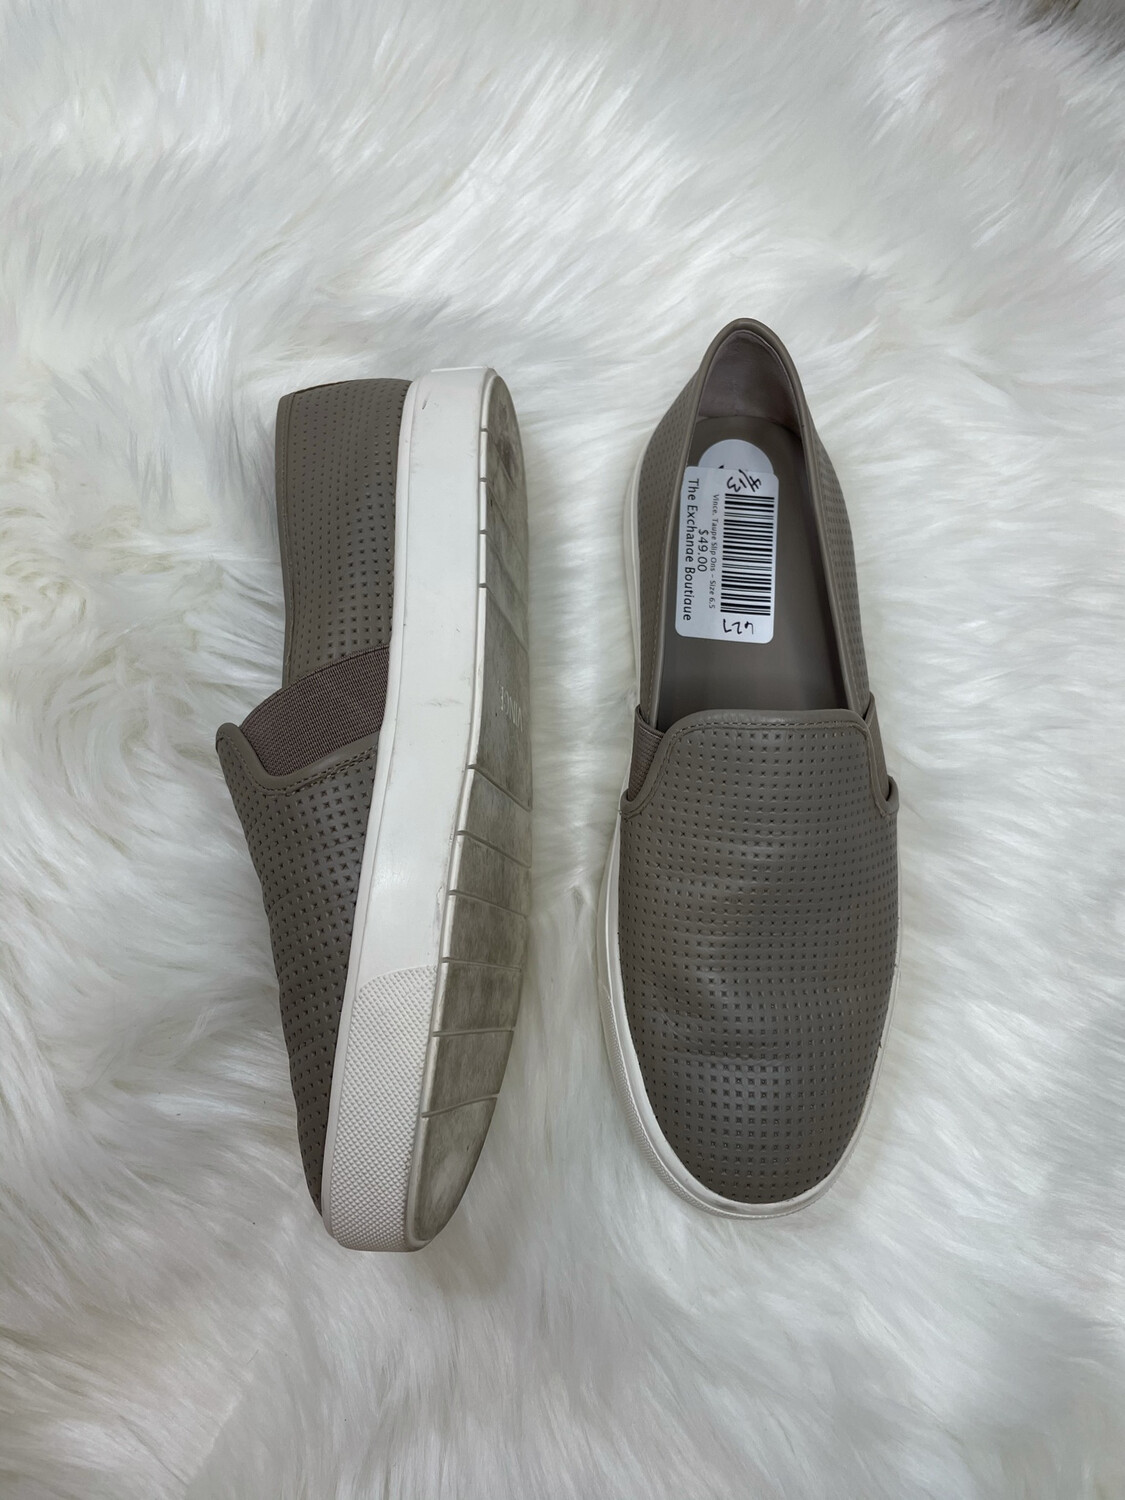 Vince. Taupe Slip Ons - Size 6.5